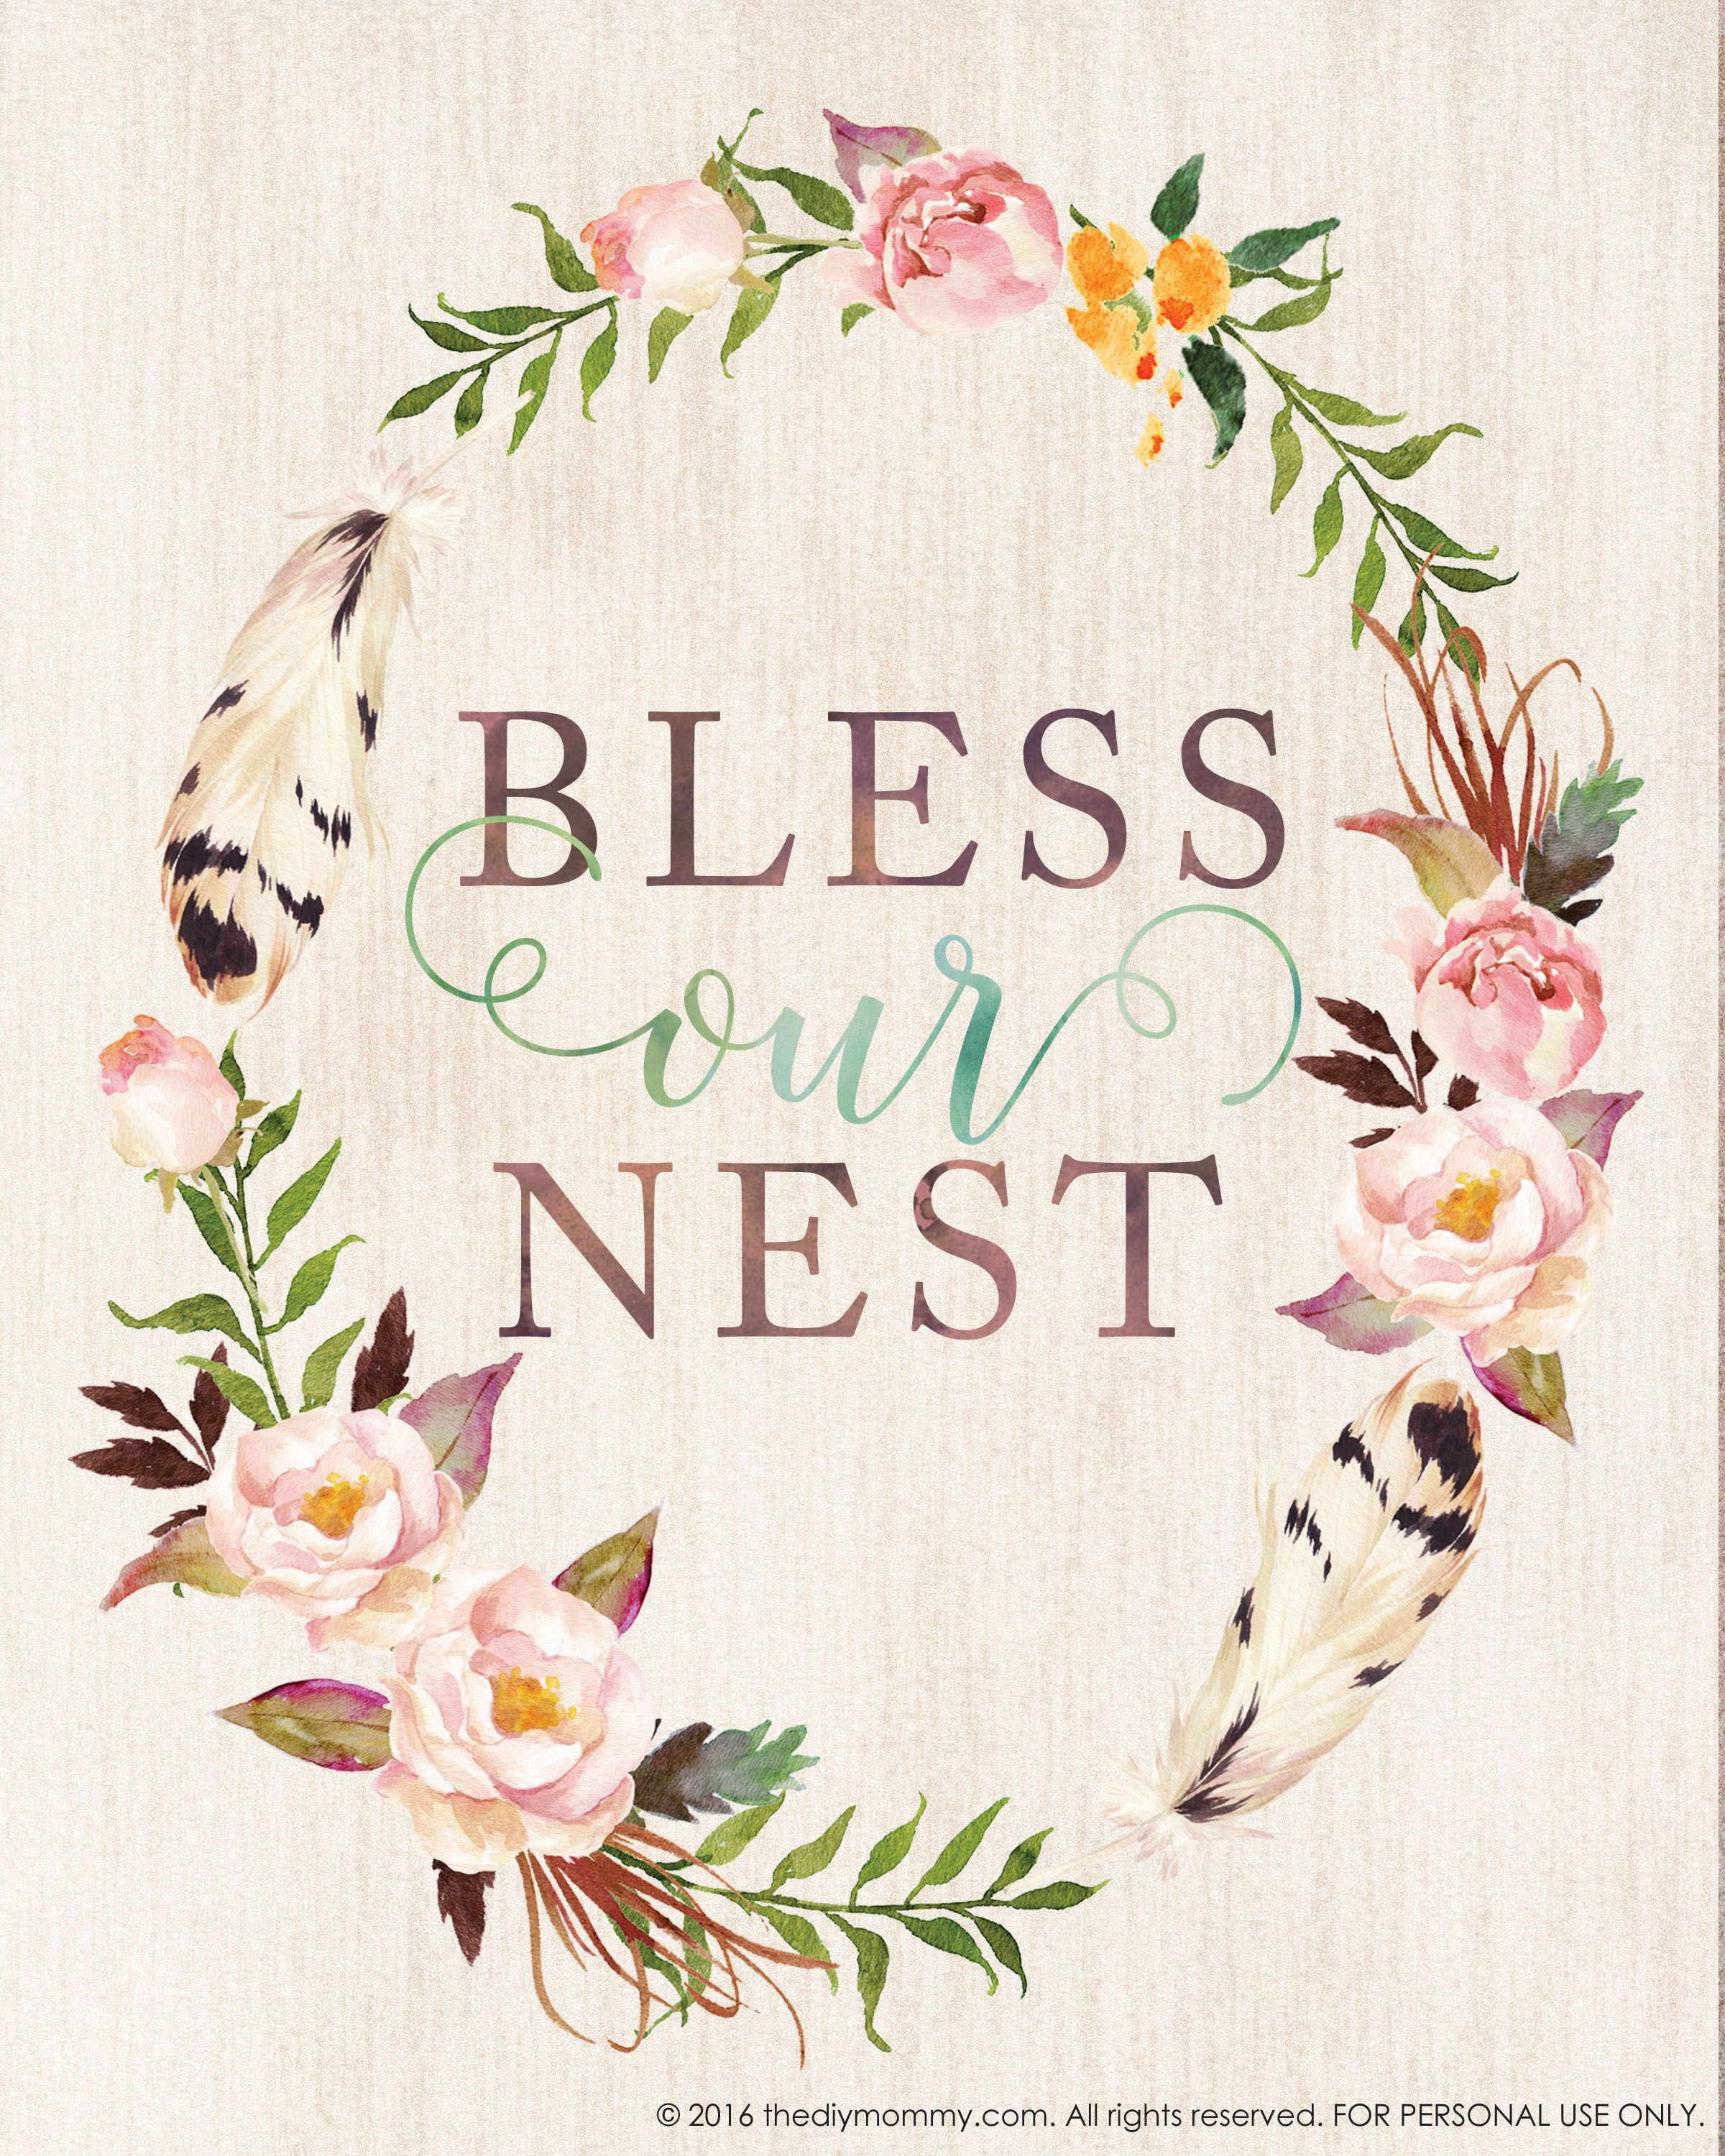 Bless Our Nest - Free Printable Watercolor Artwork For Spring - Free Printable Artwork